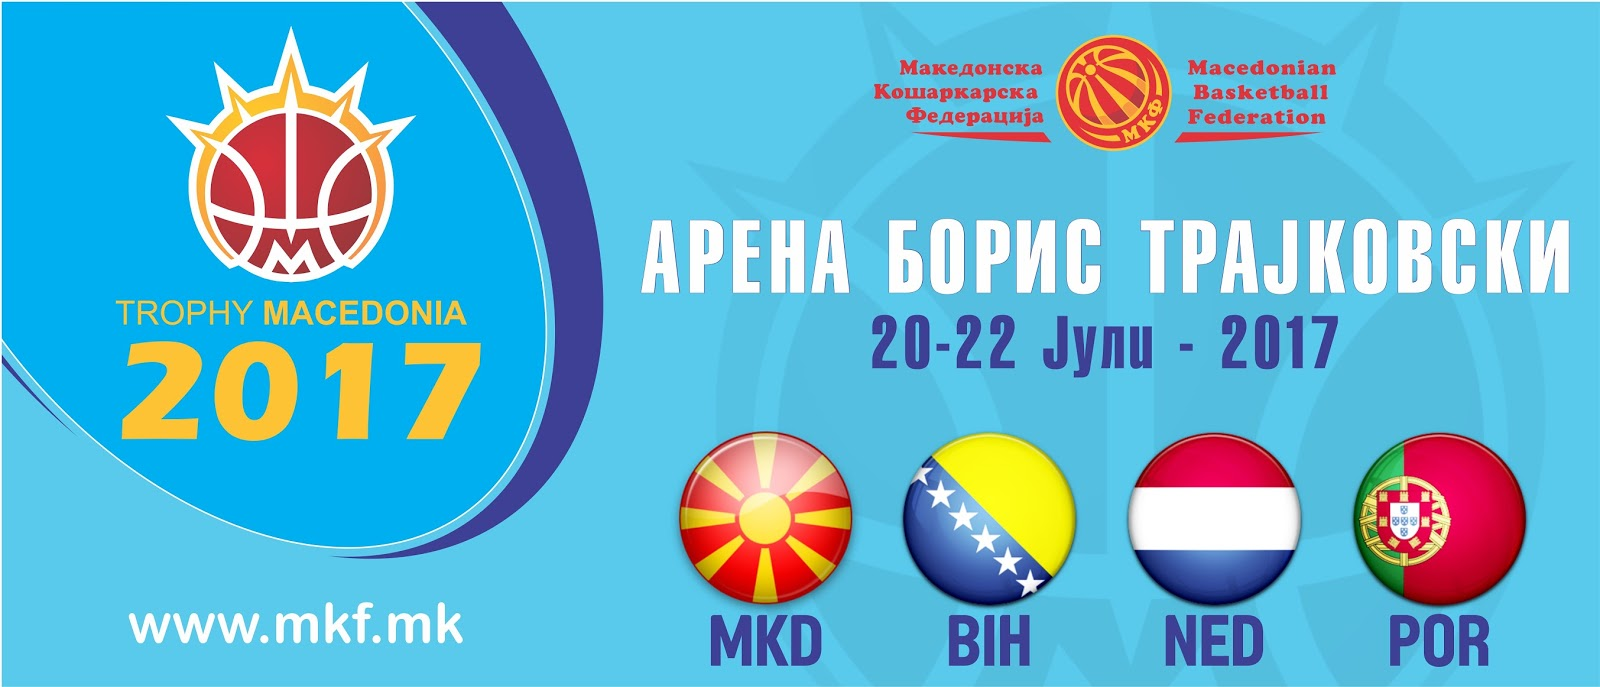 Bosnia, Portugal and the Netherlands participate in the Trophy Macedonia basketball tournament